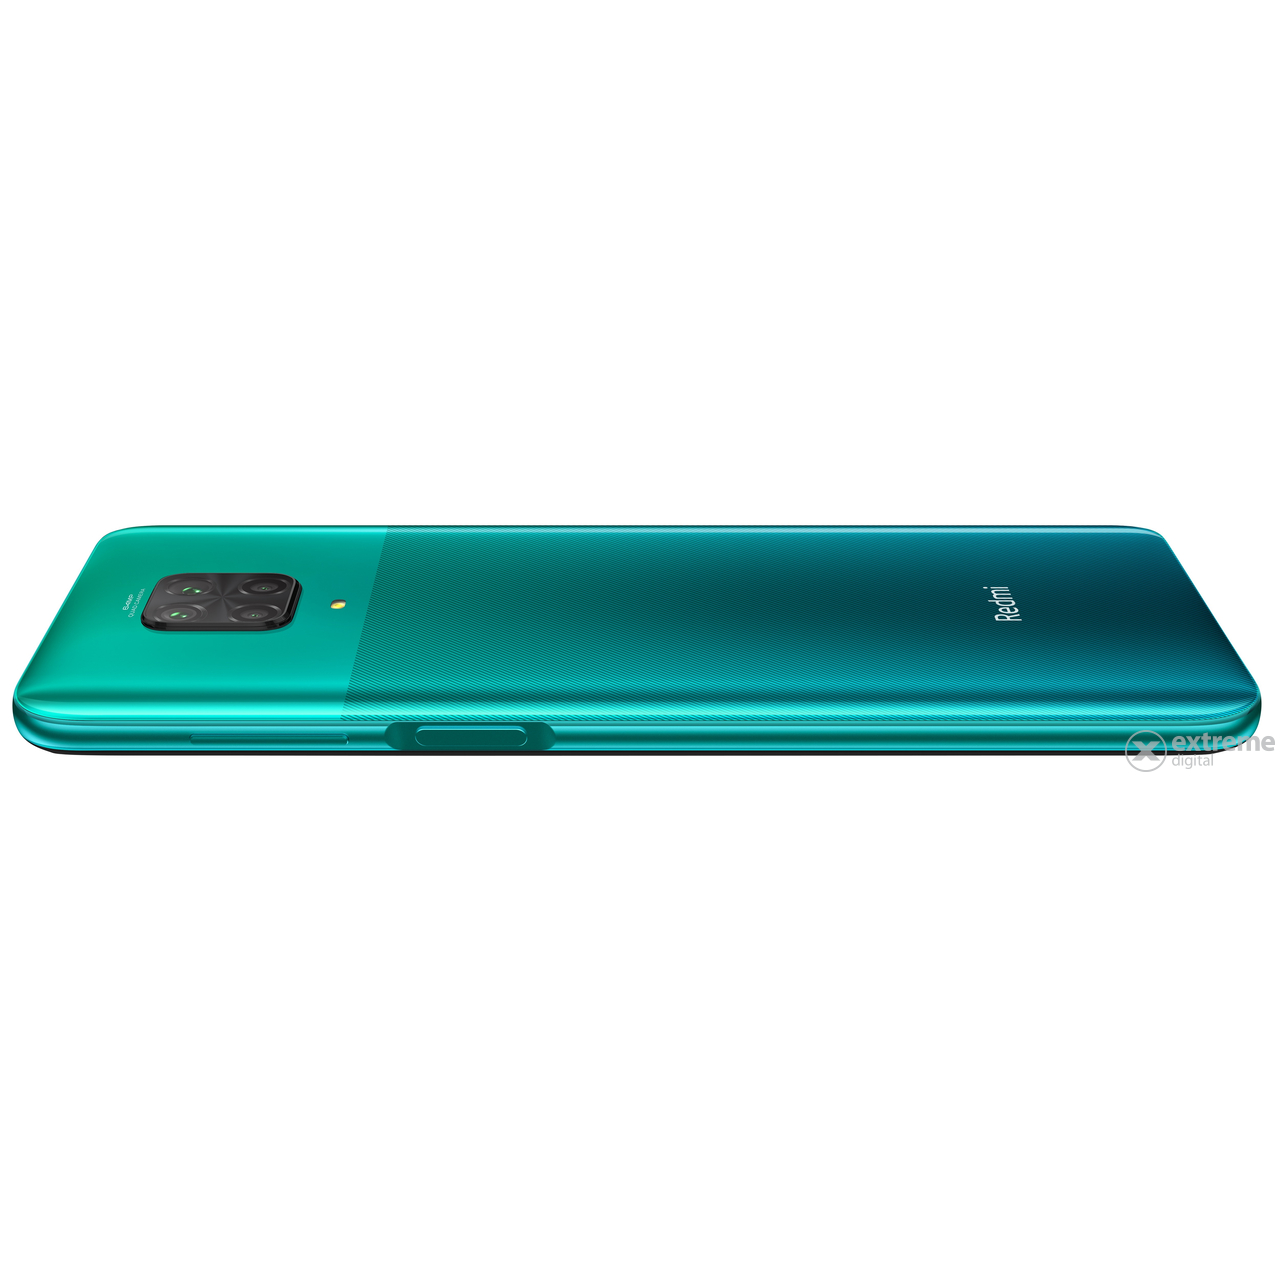 Xiaomi Redmi Note 9 Pro 6GB/128GB Dual SIM pametni telefon, Tropical Green